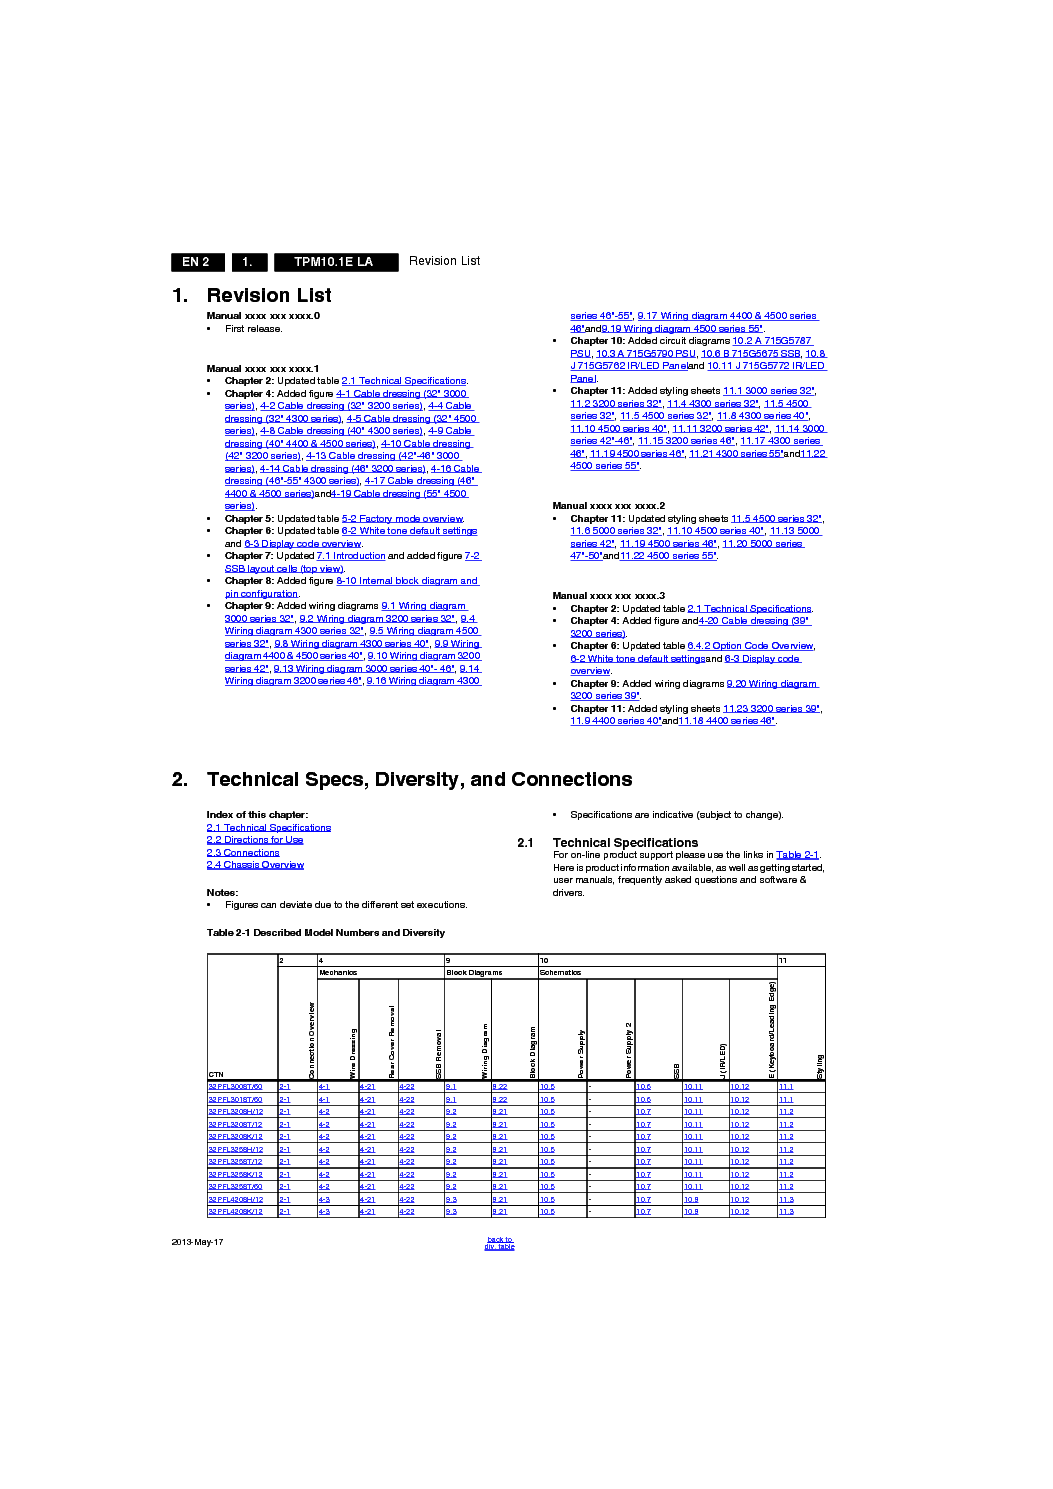 PHILIPS CHASSIS TPM10 1E LA service manual (2nd page)